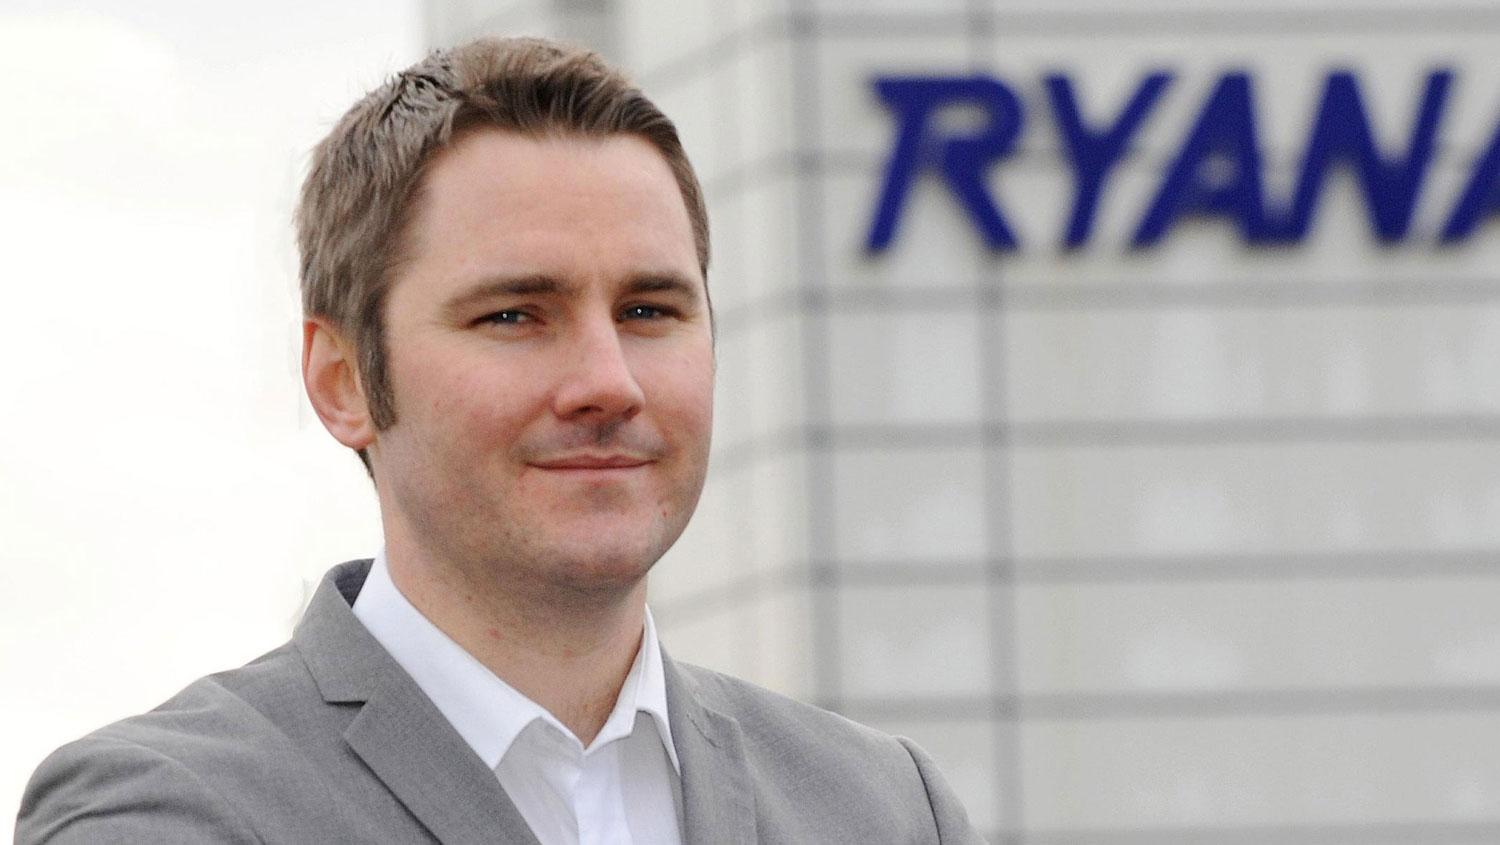 Robin Kiely, Head of Communications bei Ryanair